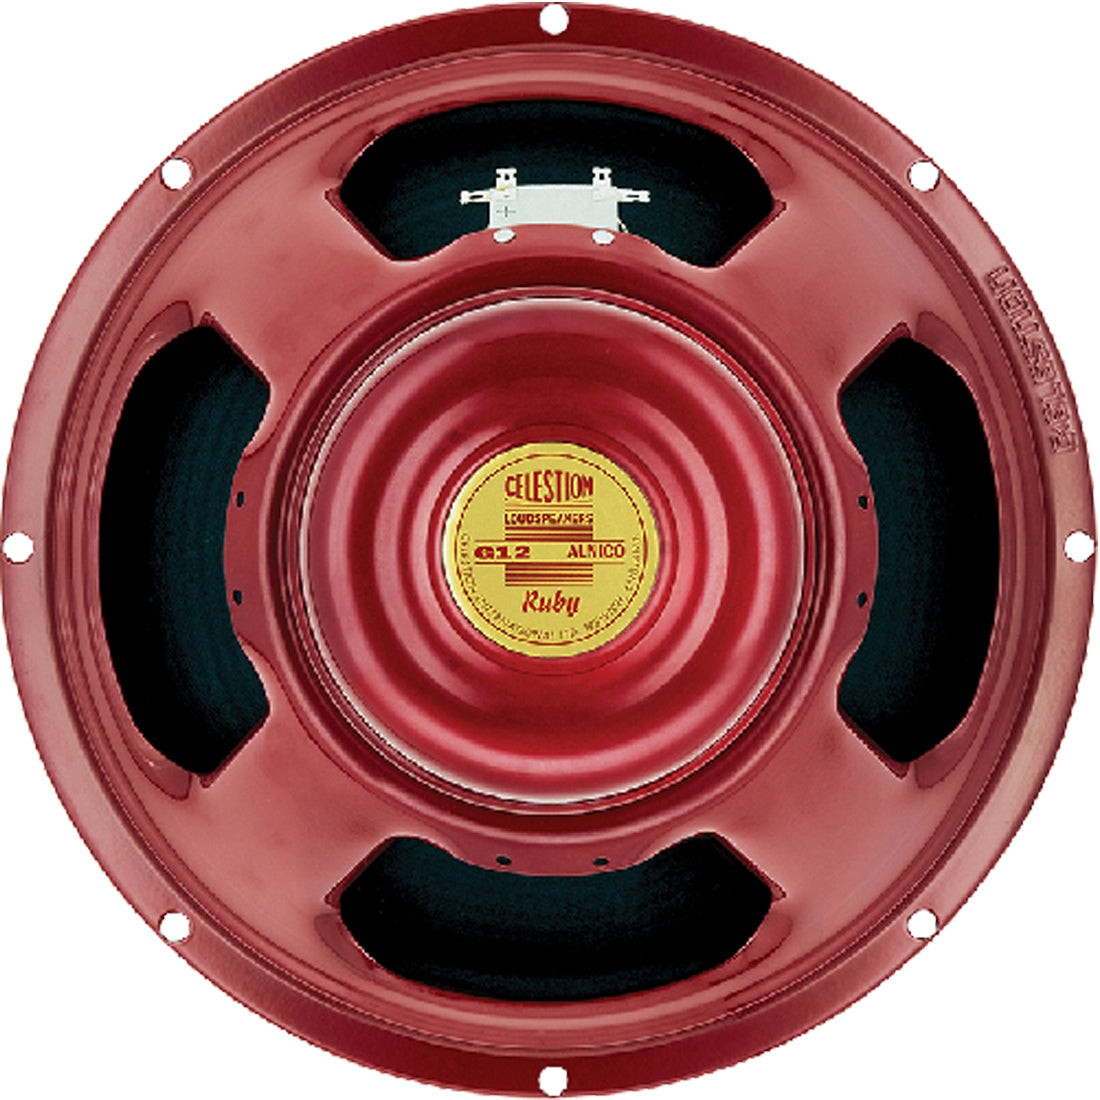 Celestion T6385 Alnico RUBY Guitar Speaker 12 Inch 35w 16ohm